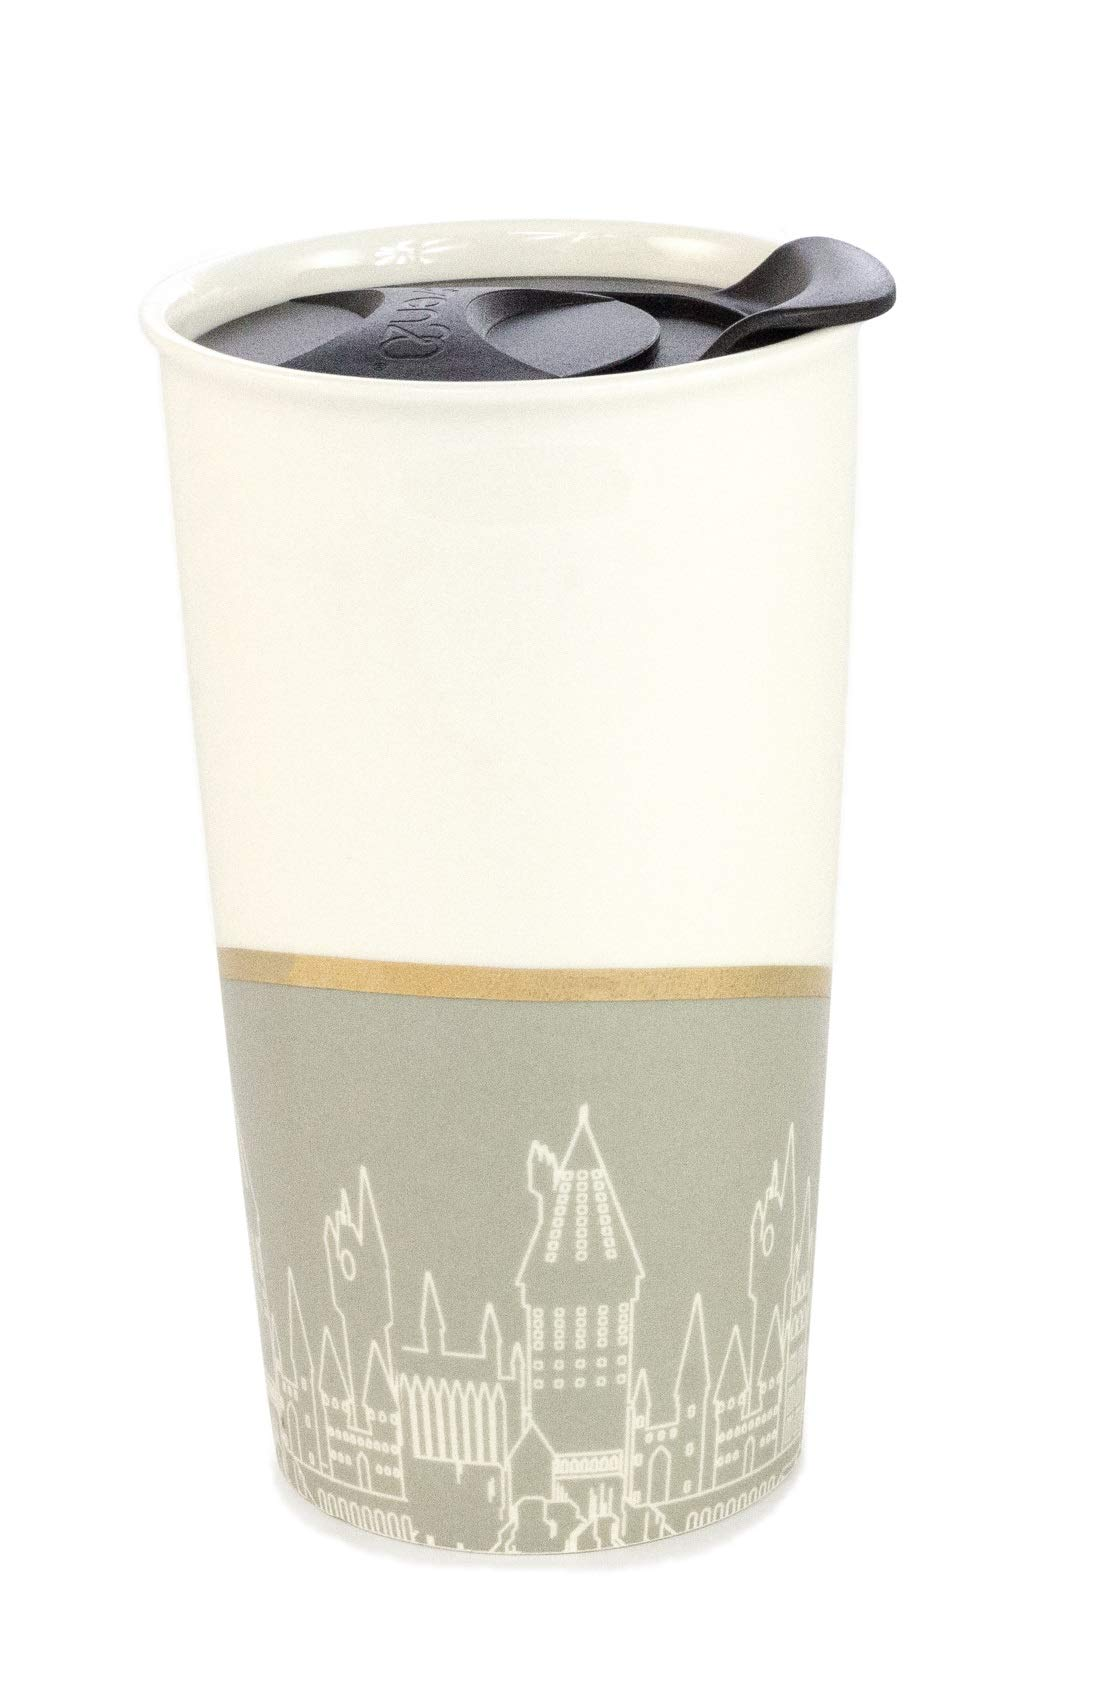 Harry Potter Travel Mug – Harry Potter Tumbler for Hot Tea and Coffee – Ceramic Coffee Mug with Hogwarts Silhouette, Gold Plated Finish – Perfect Harry Potter Gifts for Women, Men and Muggles